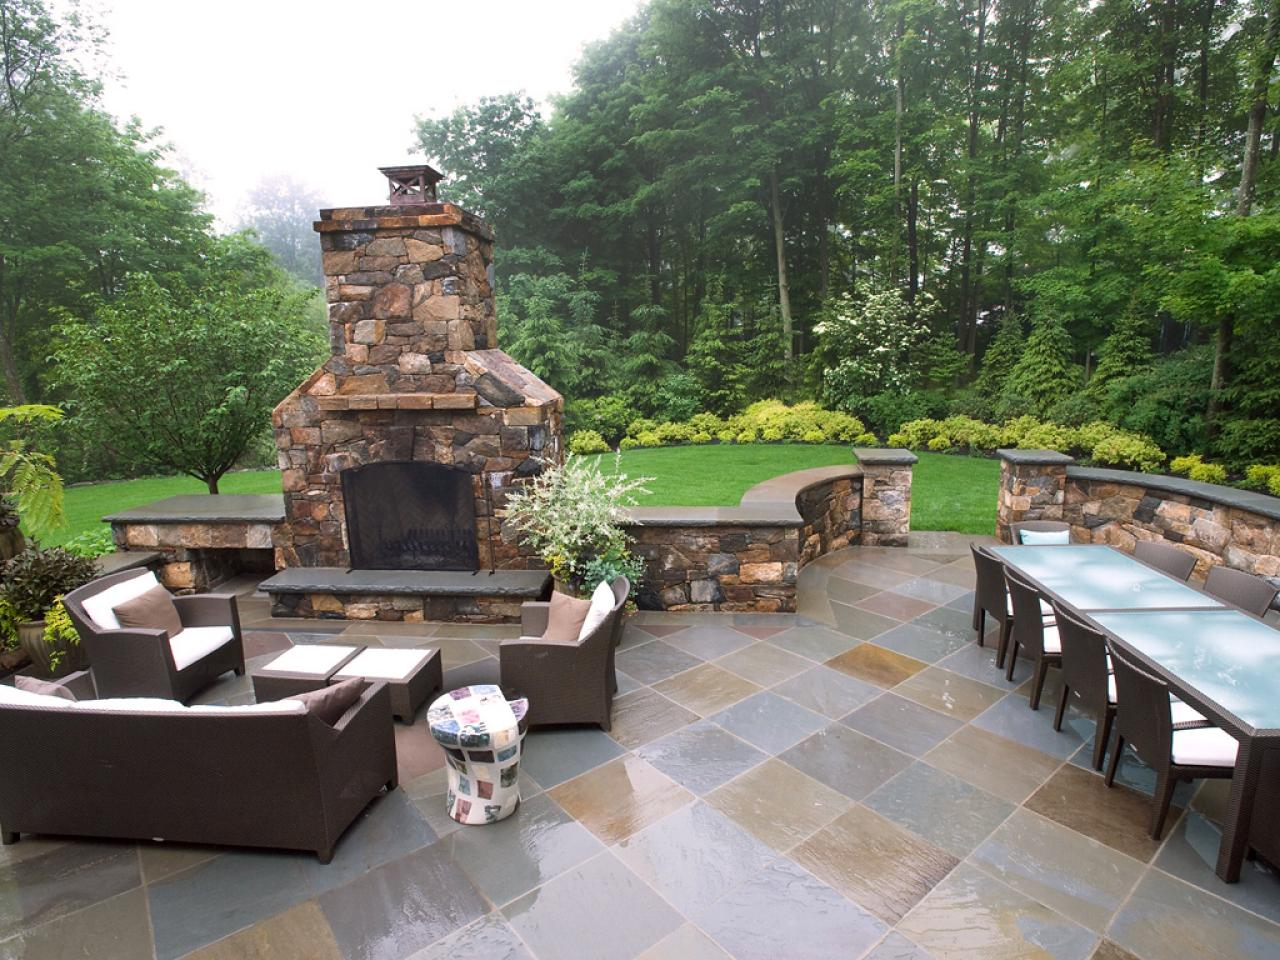 Patio Design & Installation-Irving TX Professional Landscapers & Outdoor Living Designs-We offer Landscape Design, Outdoor Patios & Pergolas, Outdoor Living Spaces, Stonescapes, Residential & Commercial Landscaping, Irrigation Installation & Repairs, Drainage Systems, Landscape Lighting, Outdoor Living Spaces, Tree Service, Lawn Service, and more.